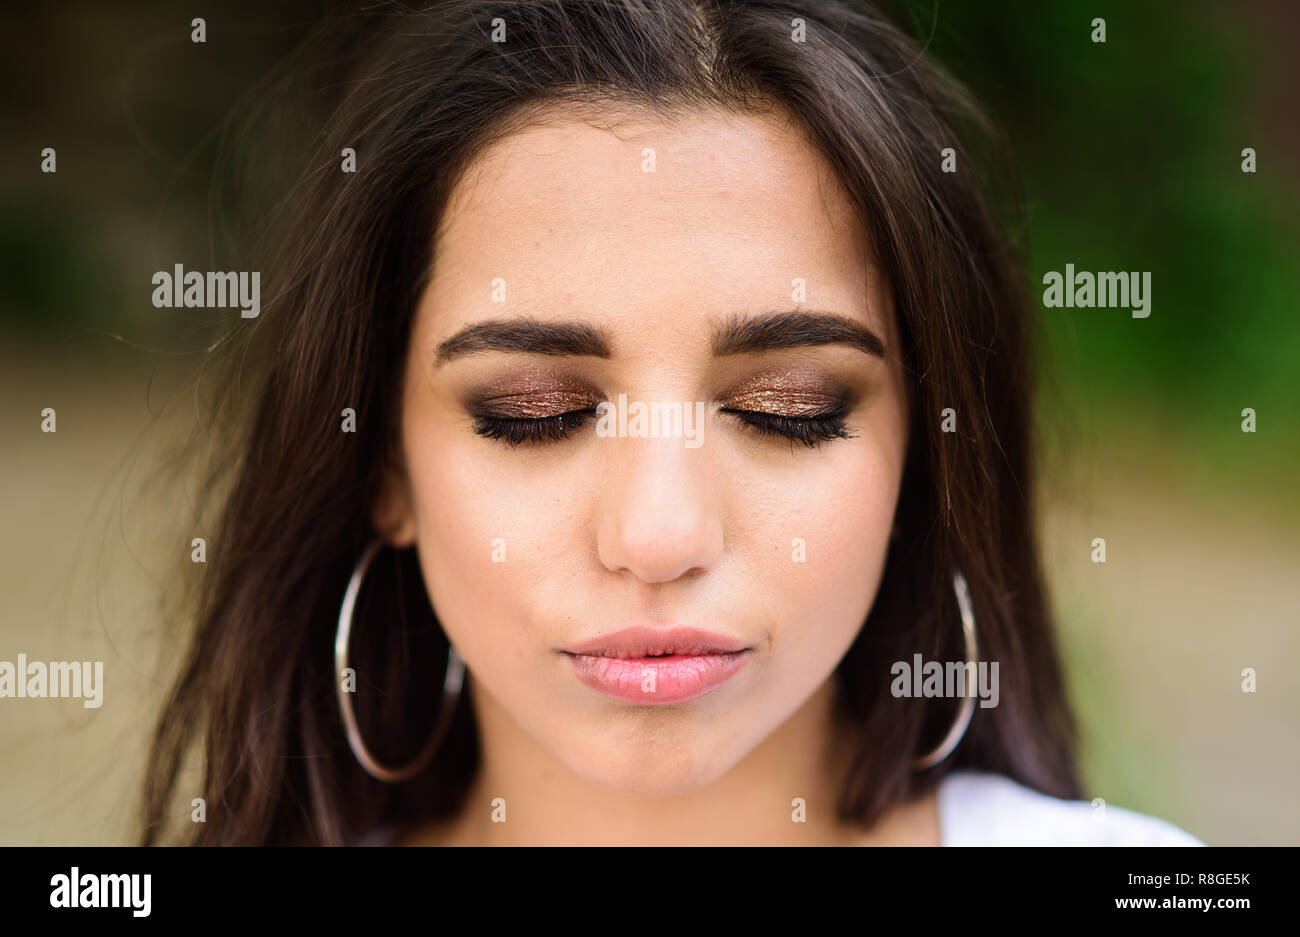 Lady relaxed face make up close eyes with shimmering eyeshadows. Make up concept. Girl wear metallic earrings. Girl attractive gorgeous brunette middle eastern appearance with make up close up. - Stock Image